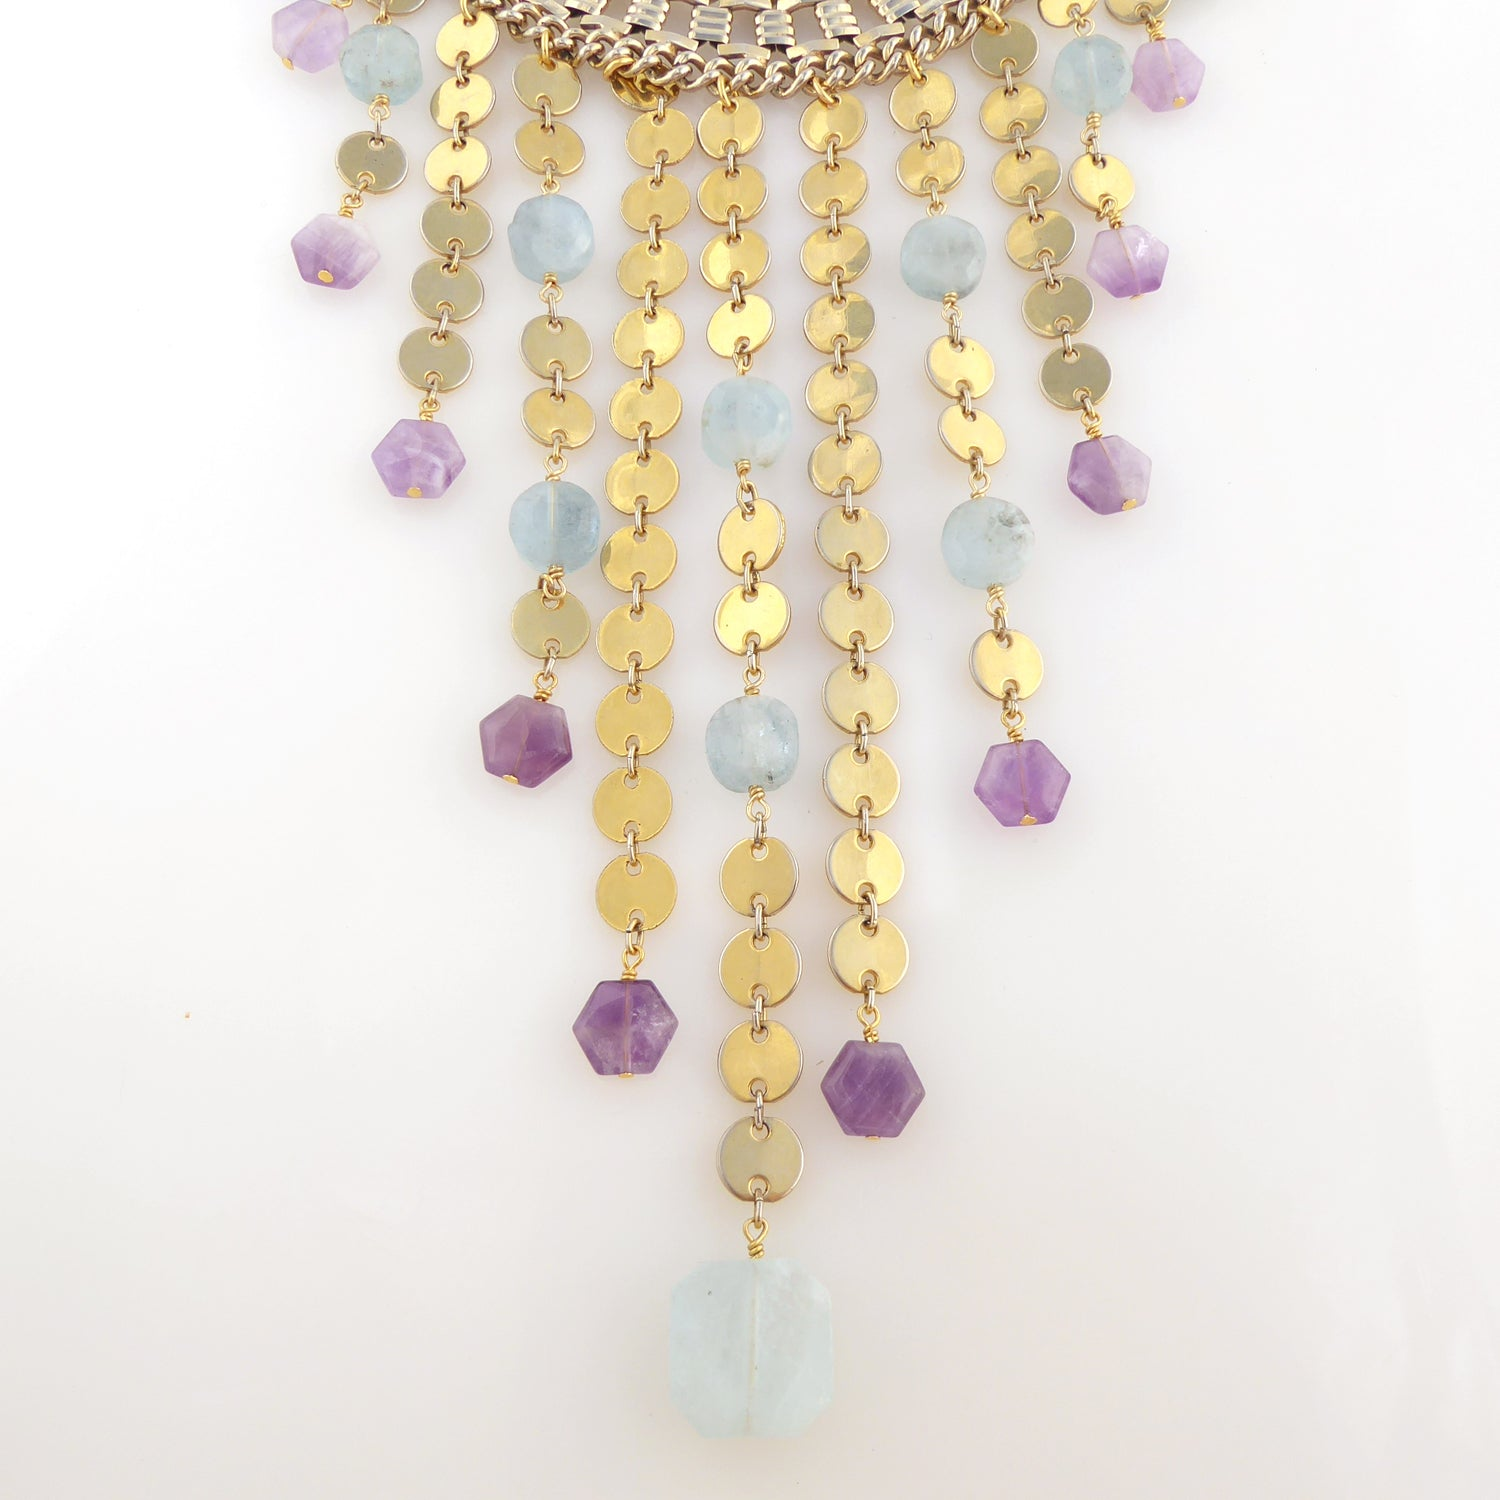 Carmeline aquamarine and amethyst necklace by Jenny Dayco 3